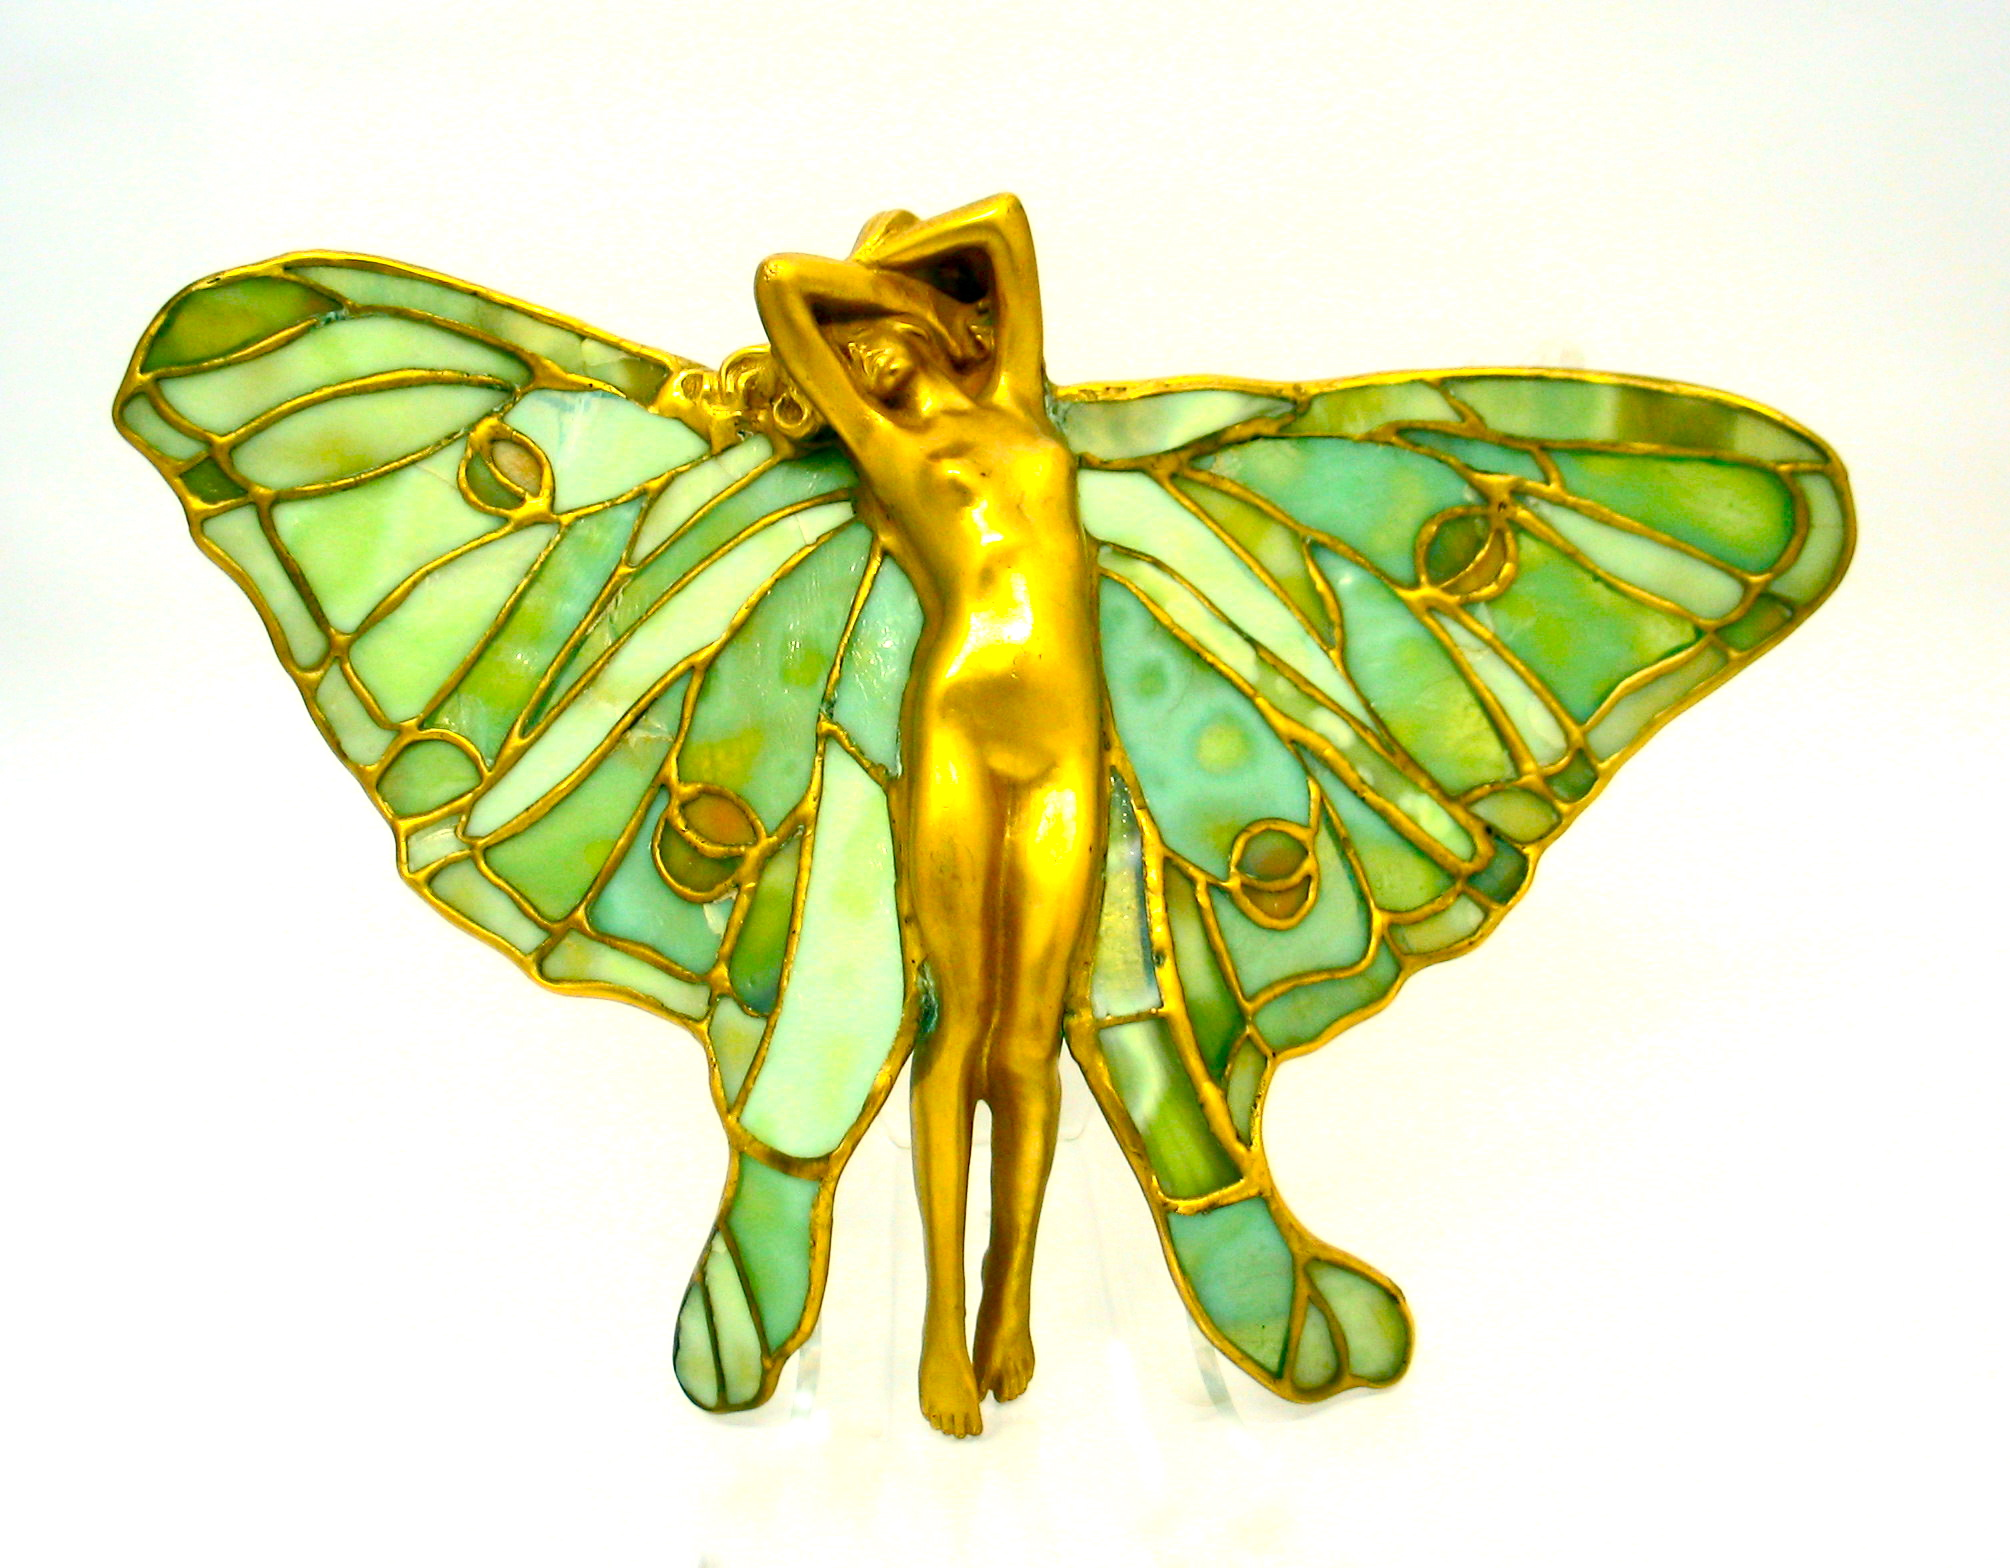 L.C. Tiffany Stained Glass Ornament